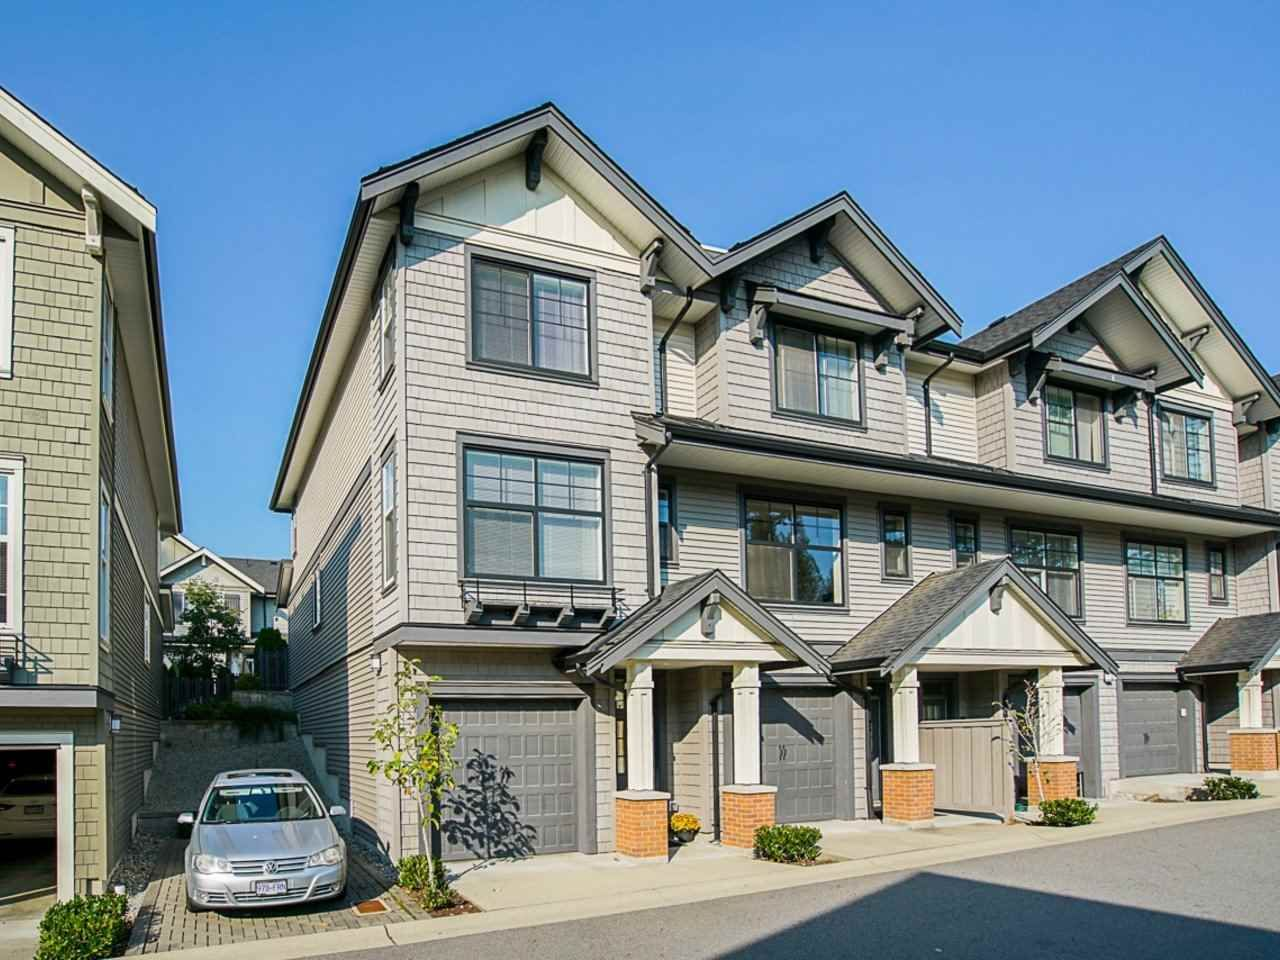 """Main Photo: 34 3470 HIGHLAND Drive in Coquitlam: Burke Mountain Townhouse for sale in """"Bridlewood"""" : MLS®# R2503494"""